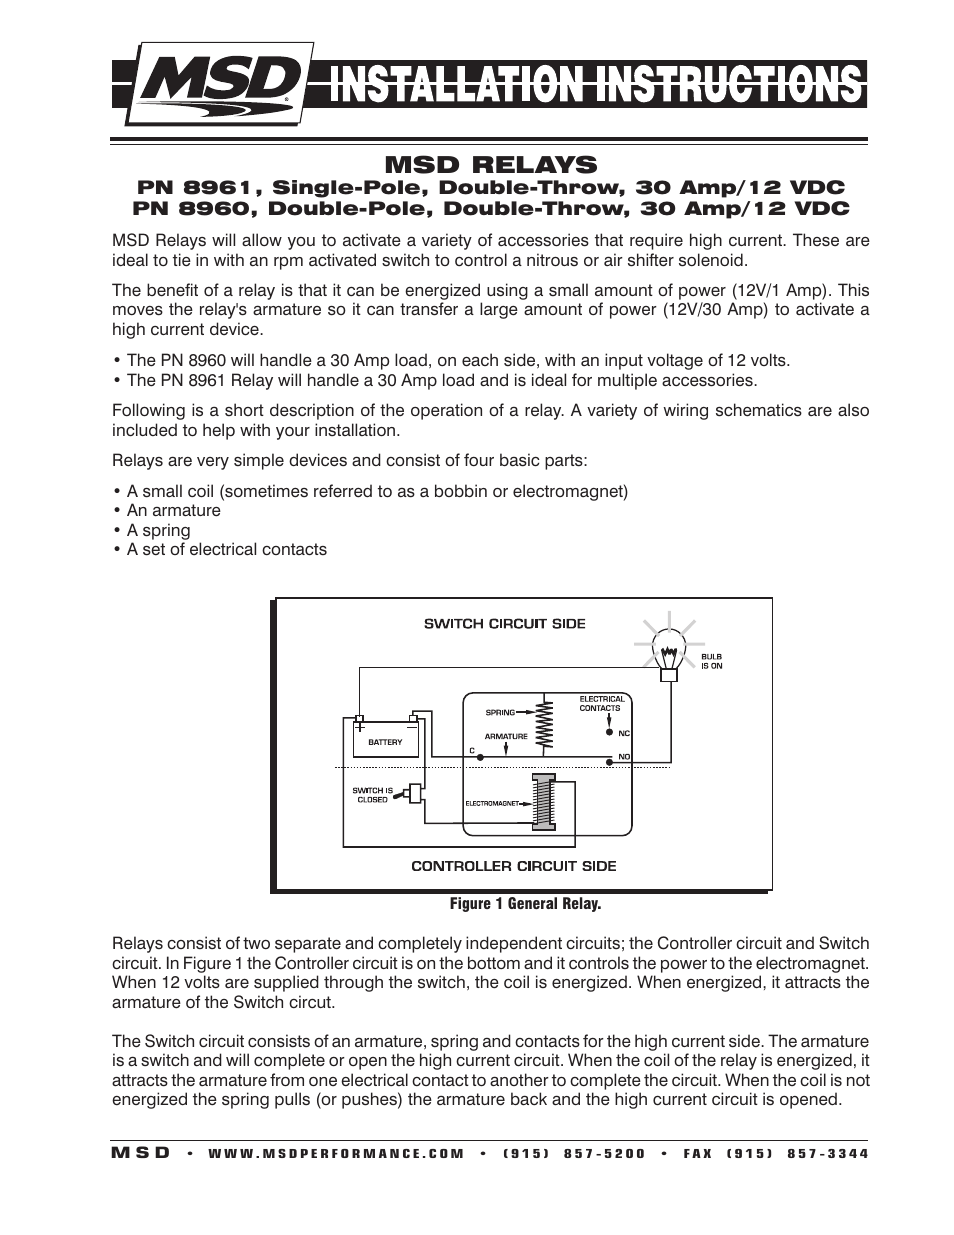 Msd 8961 high current relay spst installation user manual 4 msd 8961 high current relay spst installation user manual 4 pages also for 8960 high current relay dpst installation sciox Images